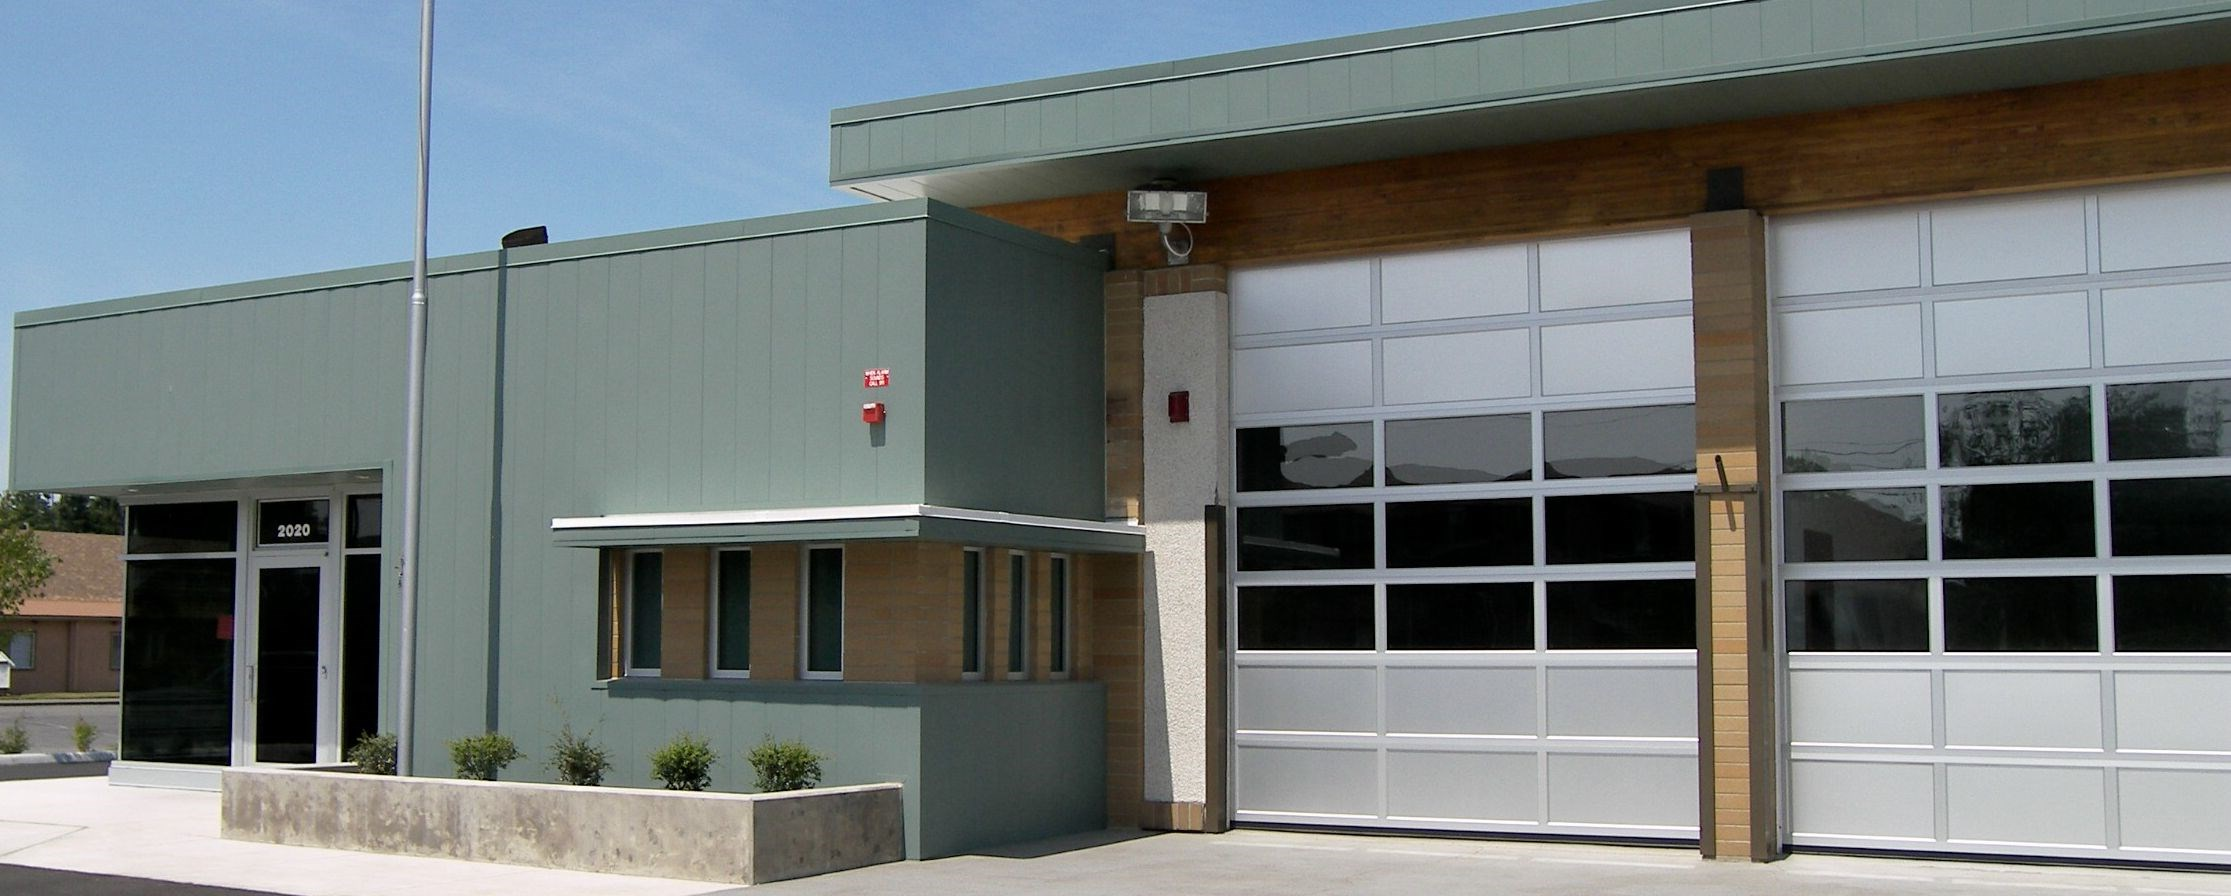 Whatcom Co. Fire District 7, Station 1